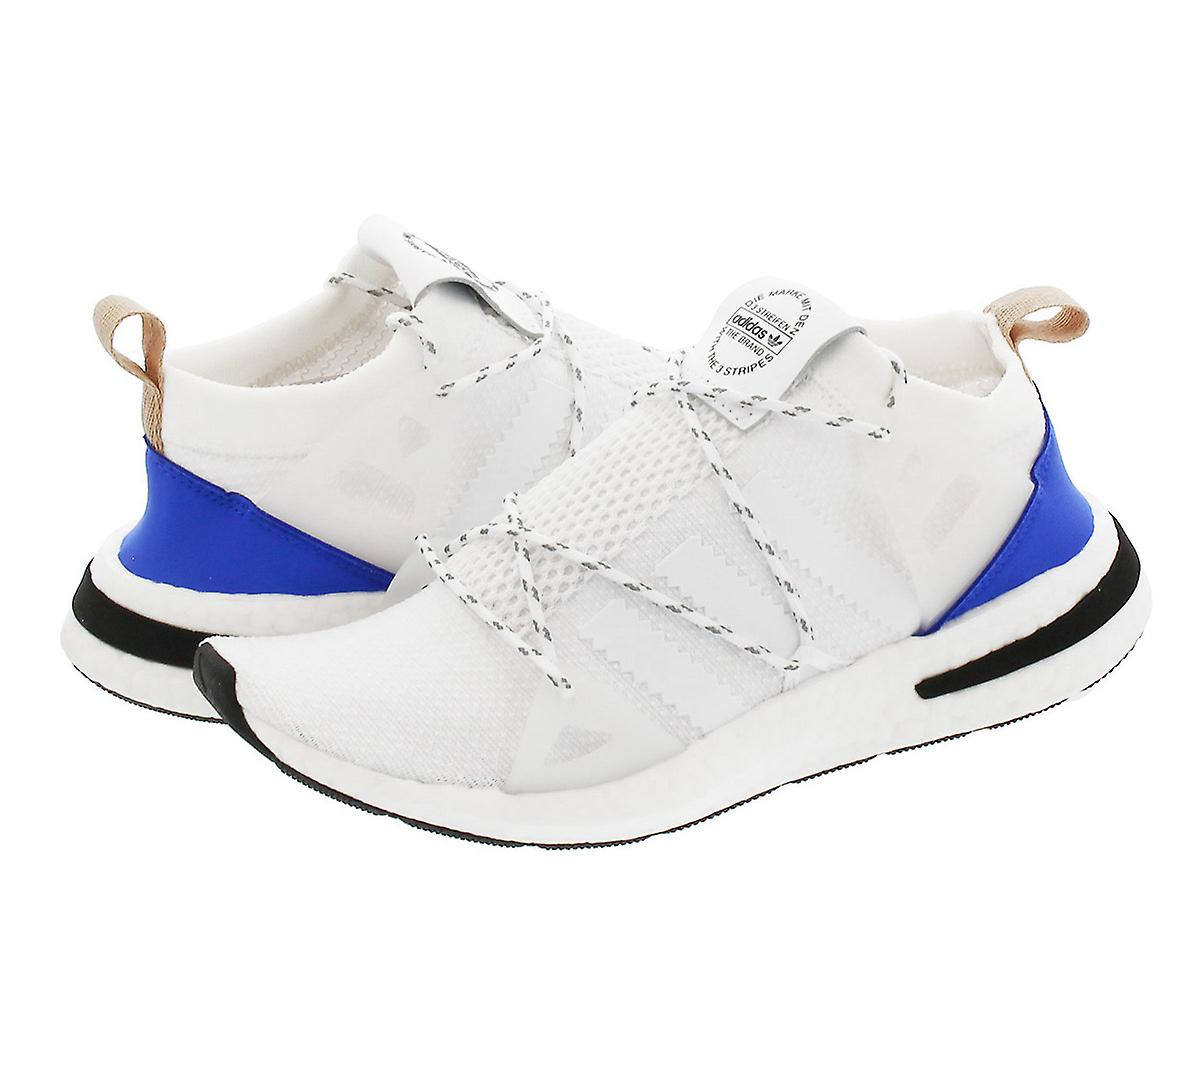 Adidas Arkyn W Cq2748 Women\'s Shoes White Sneakers Sports